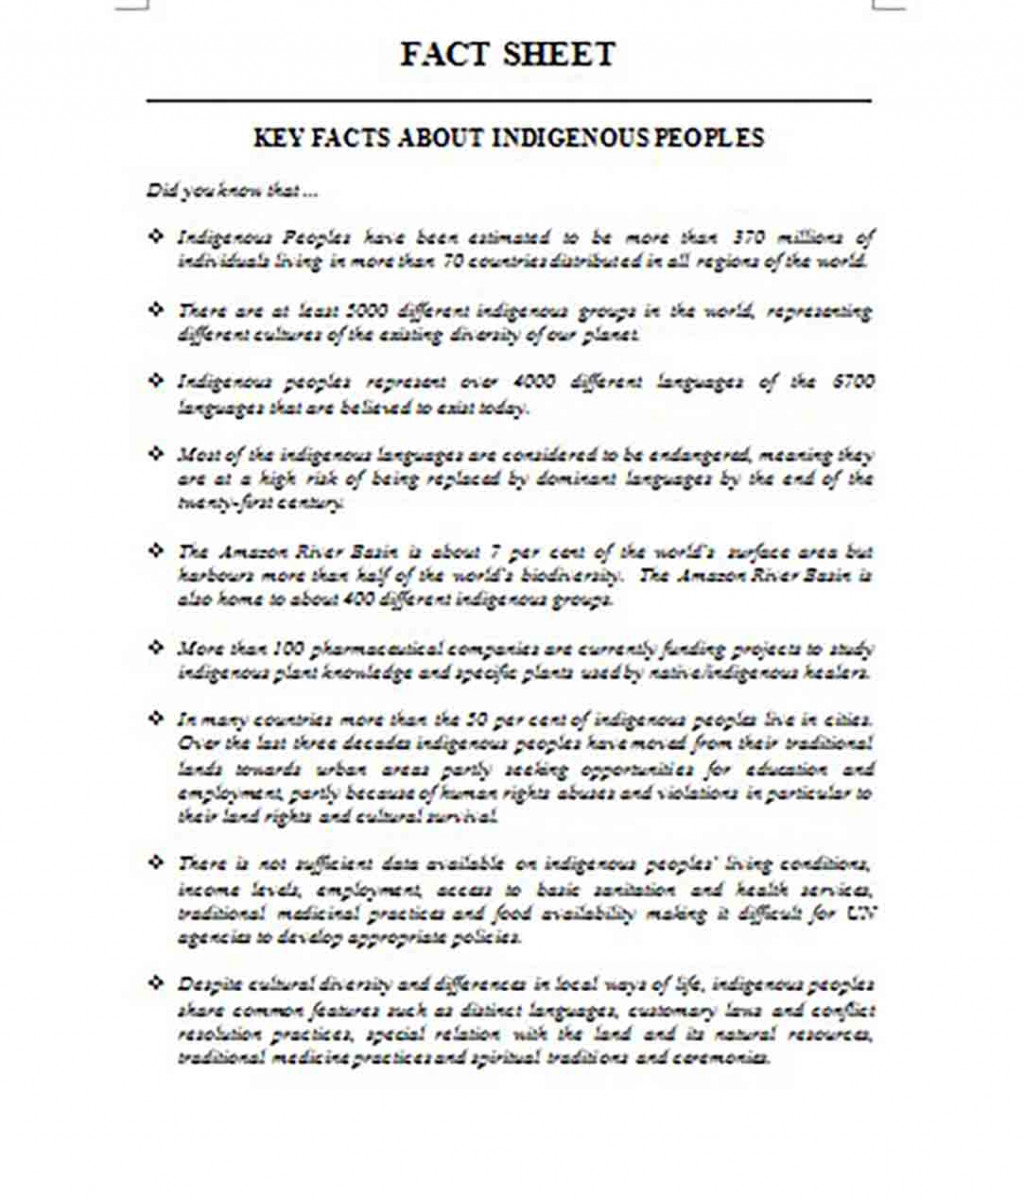 Key Fact Sheet templates About Indigenous People